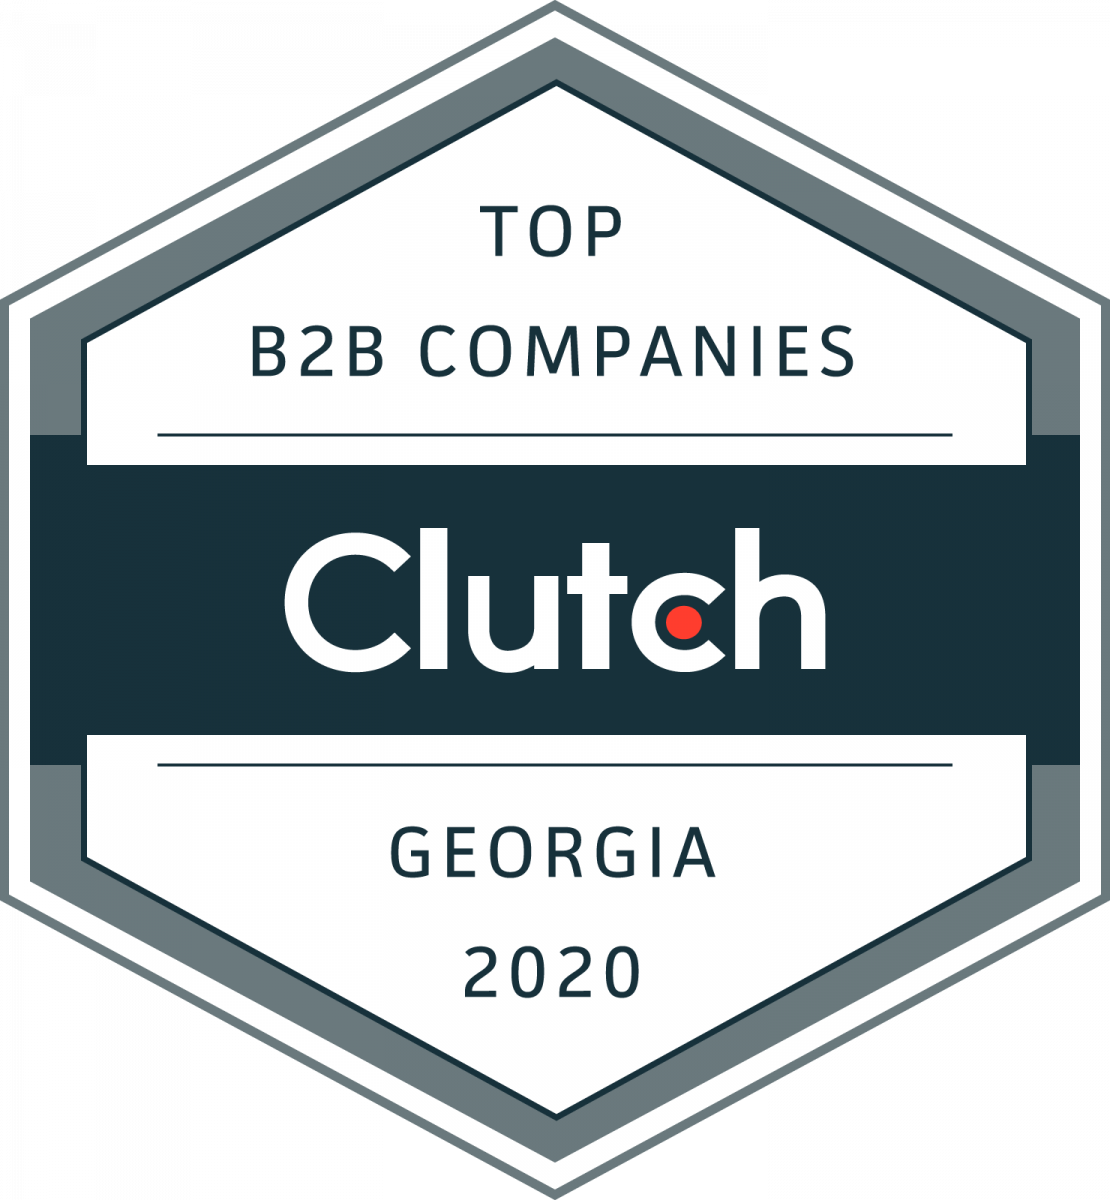 Award - Clutch top B2B Companies